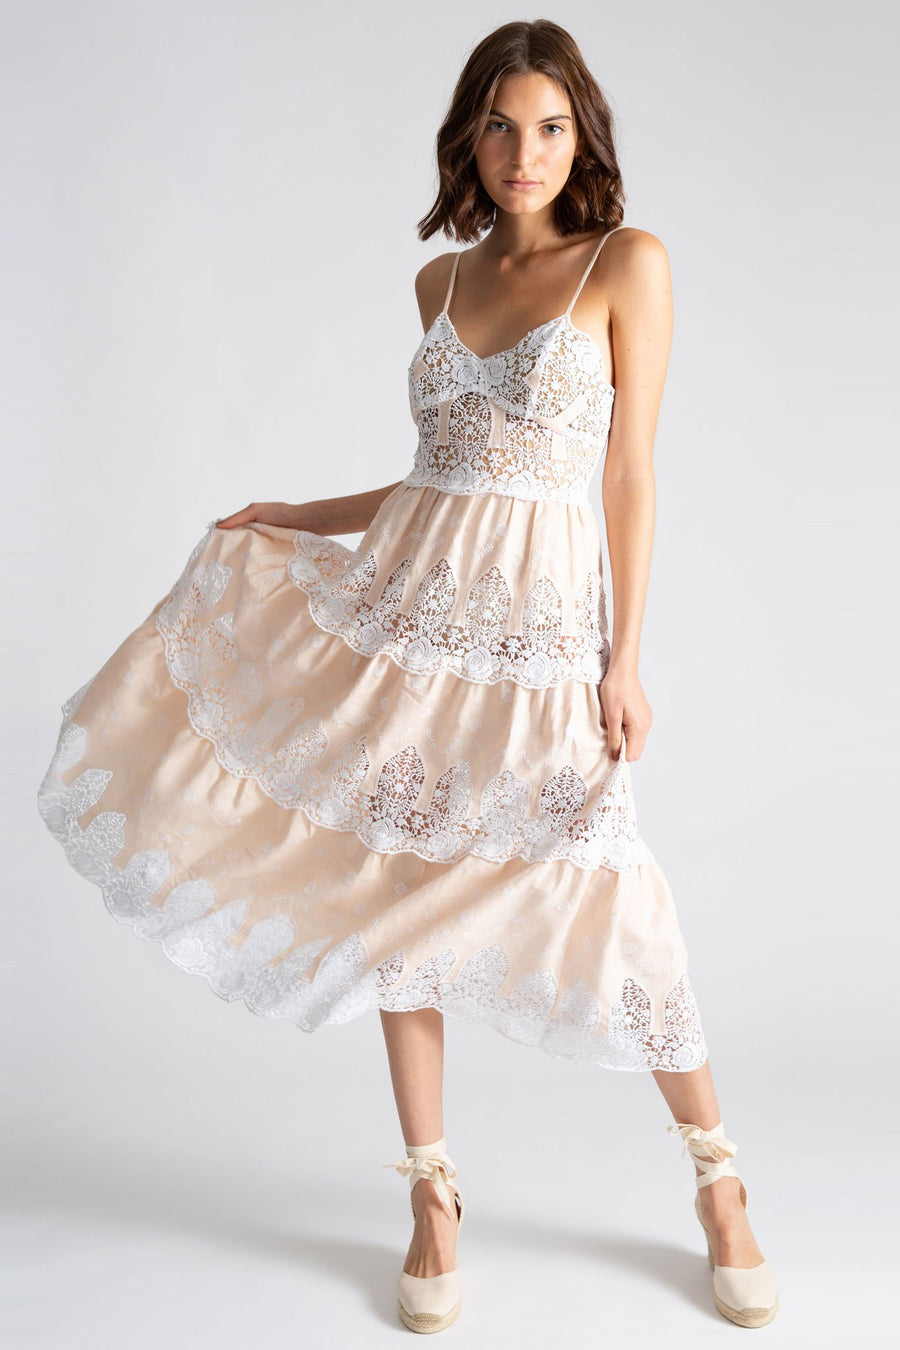 This is a photo of a woman wearing a mid length linen and lace embroidered gown with sweetheart neckline in a honeyglow linen color with white lace embroidery. She holds the right side of the skirt to show 3 tiers of lace and wears the dress with natural colored espadrilles.